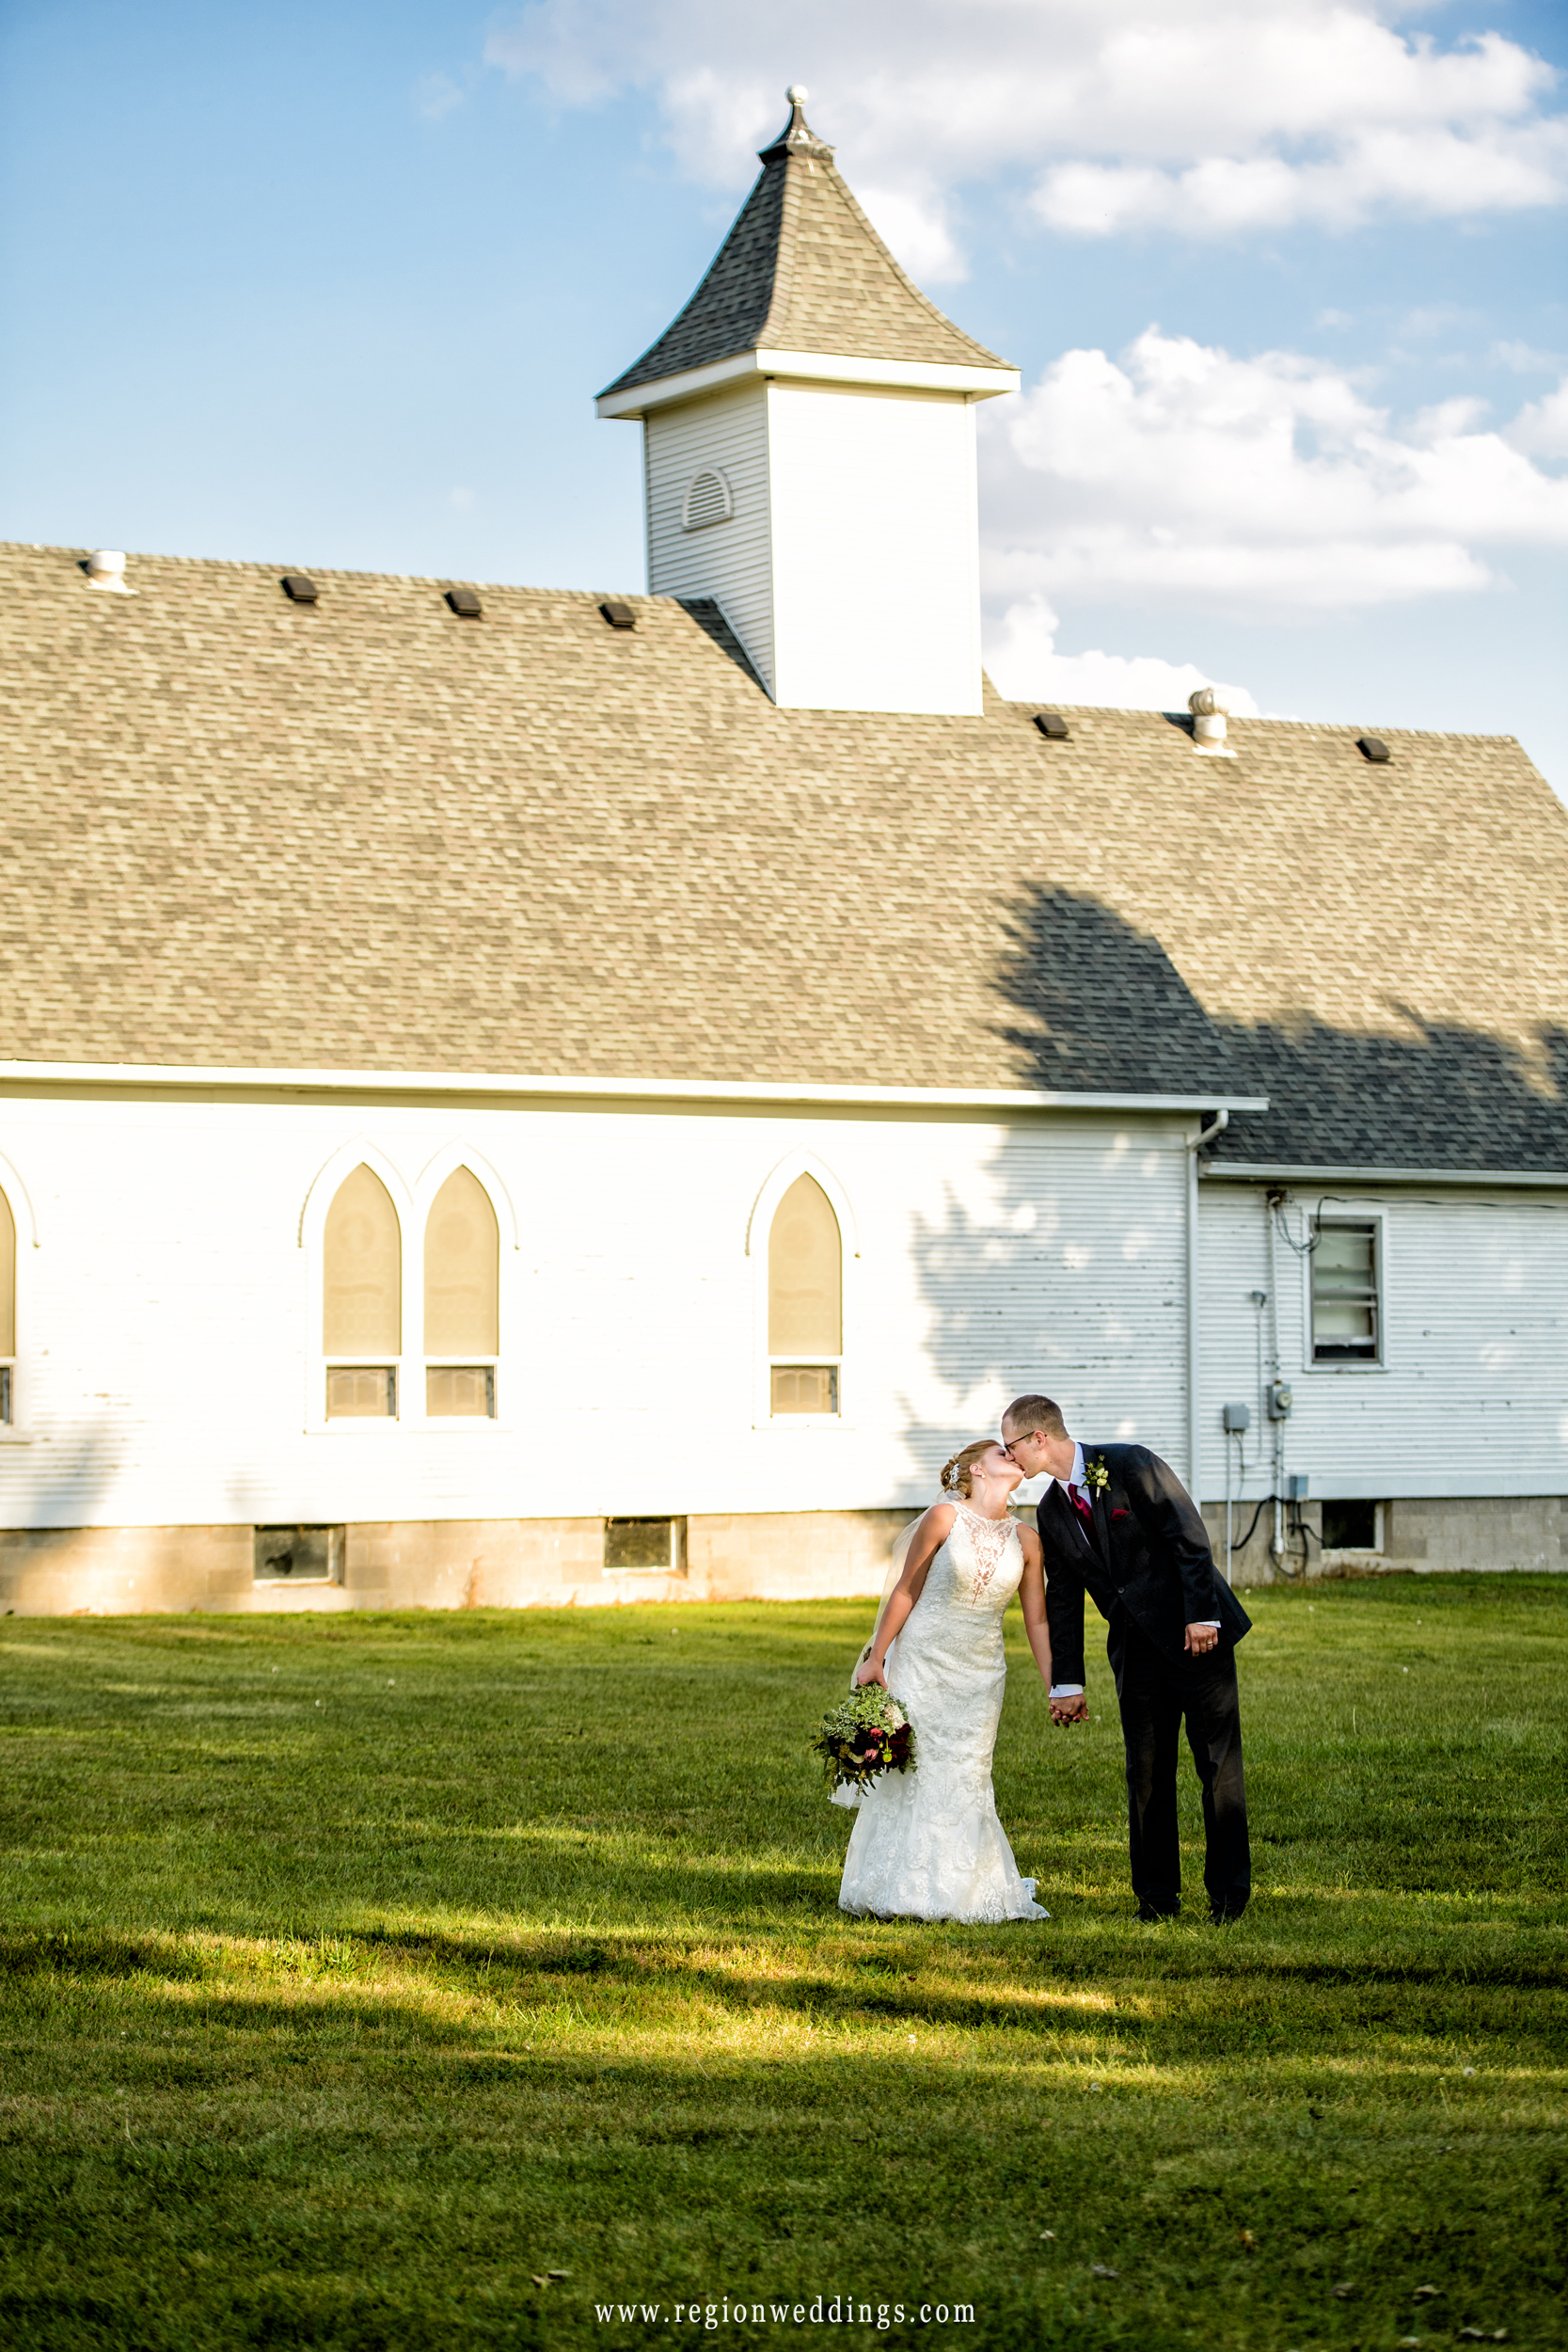 Church steeple in the background as the bride and groom kiss.